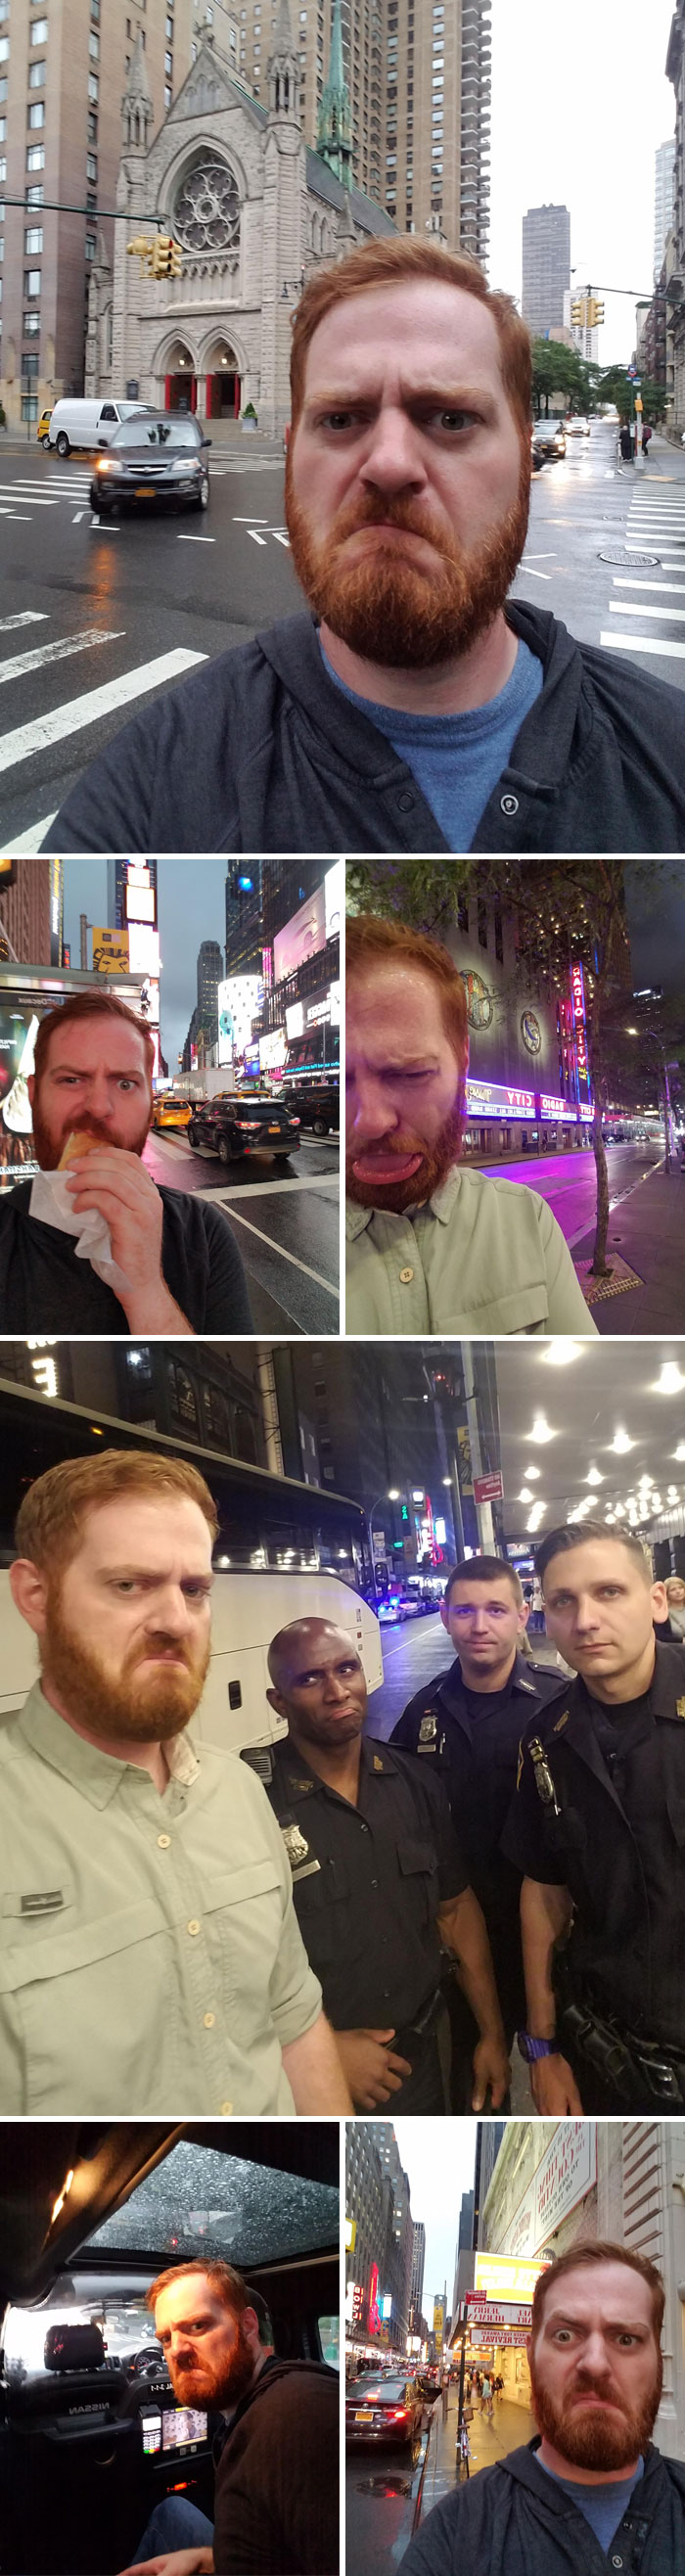 Went To NYC On Business And I Had To Show My Wife I Wasn't Enjoying It Without Her, So Here Is Me Having A Bad Time All Over New York